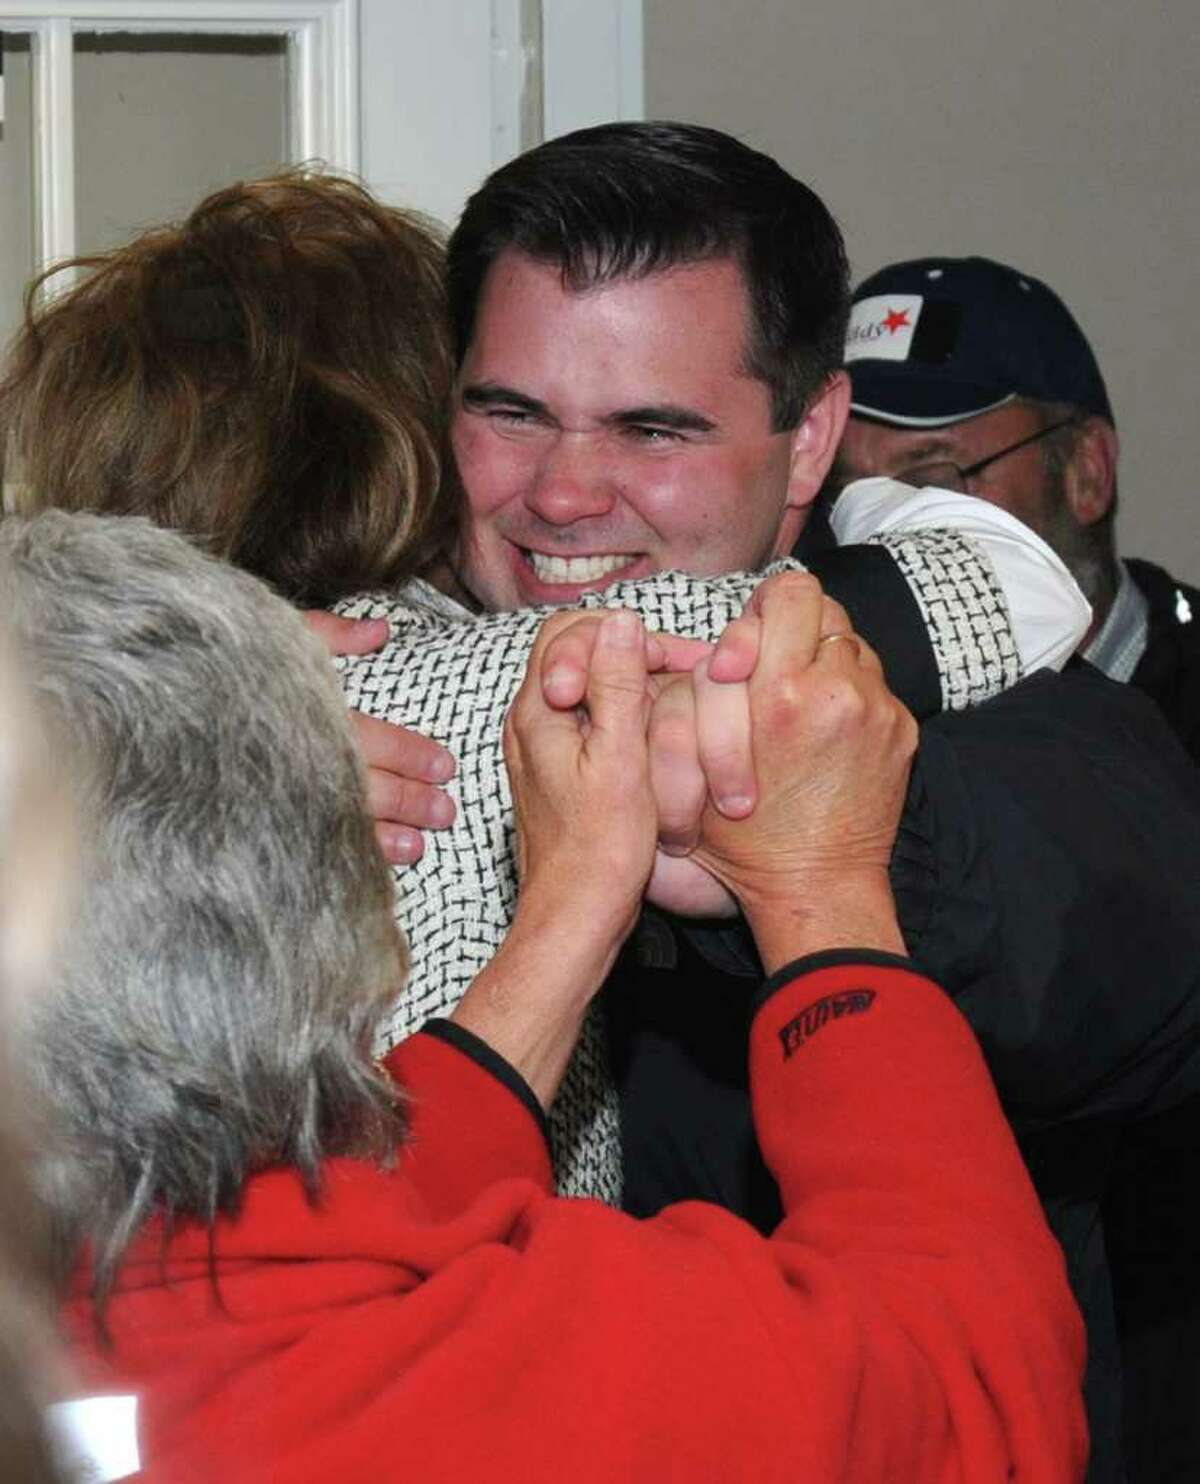 Chris Lyddy, arrives at the Democratic Headquaters in Newtown, after winning the 106th District, State Representive race, on Tuesday, Nov. 11, 2010.